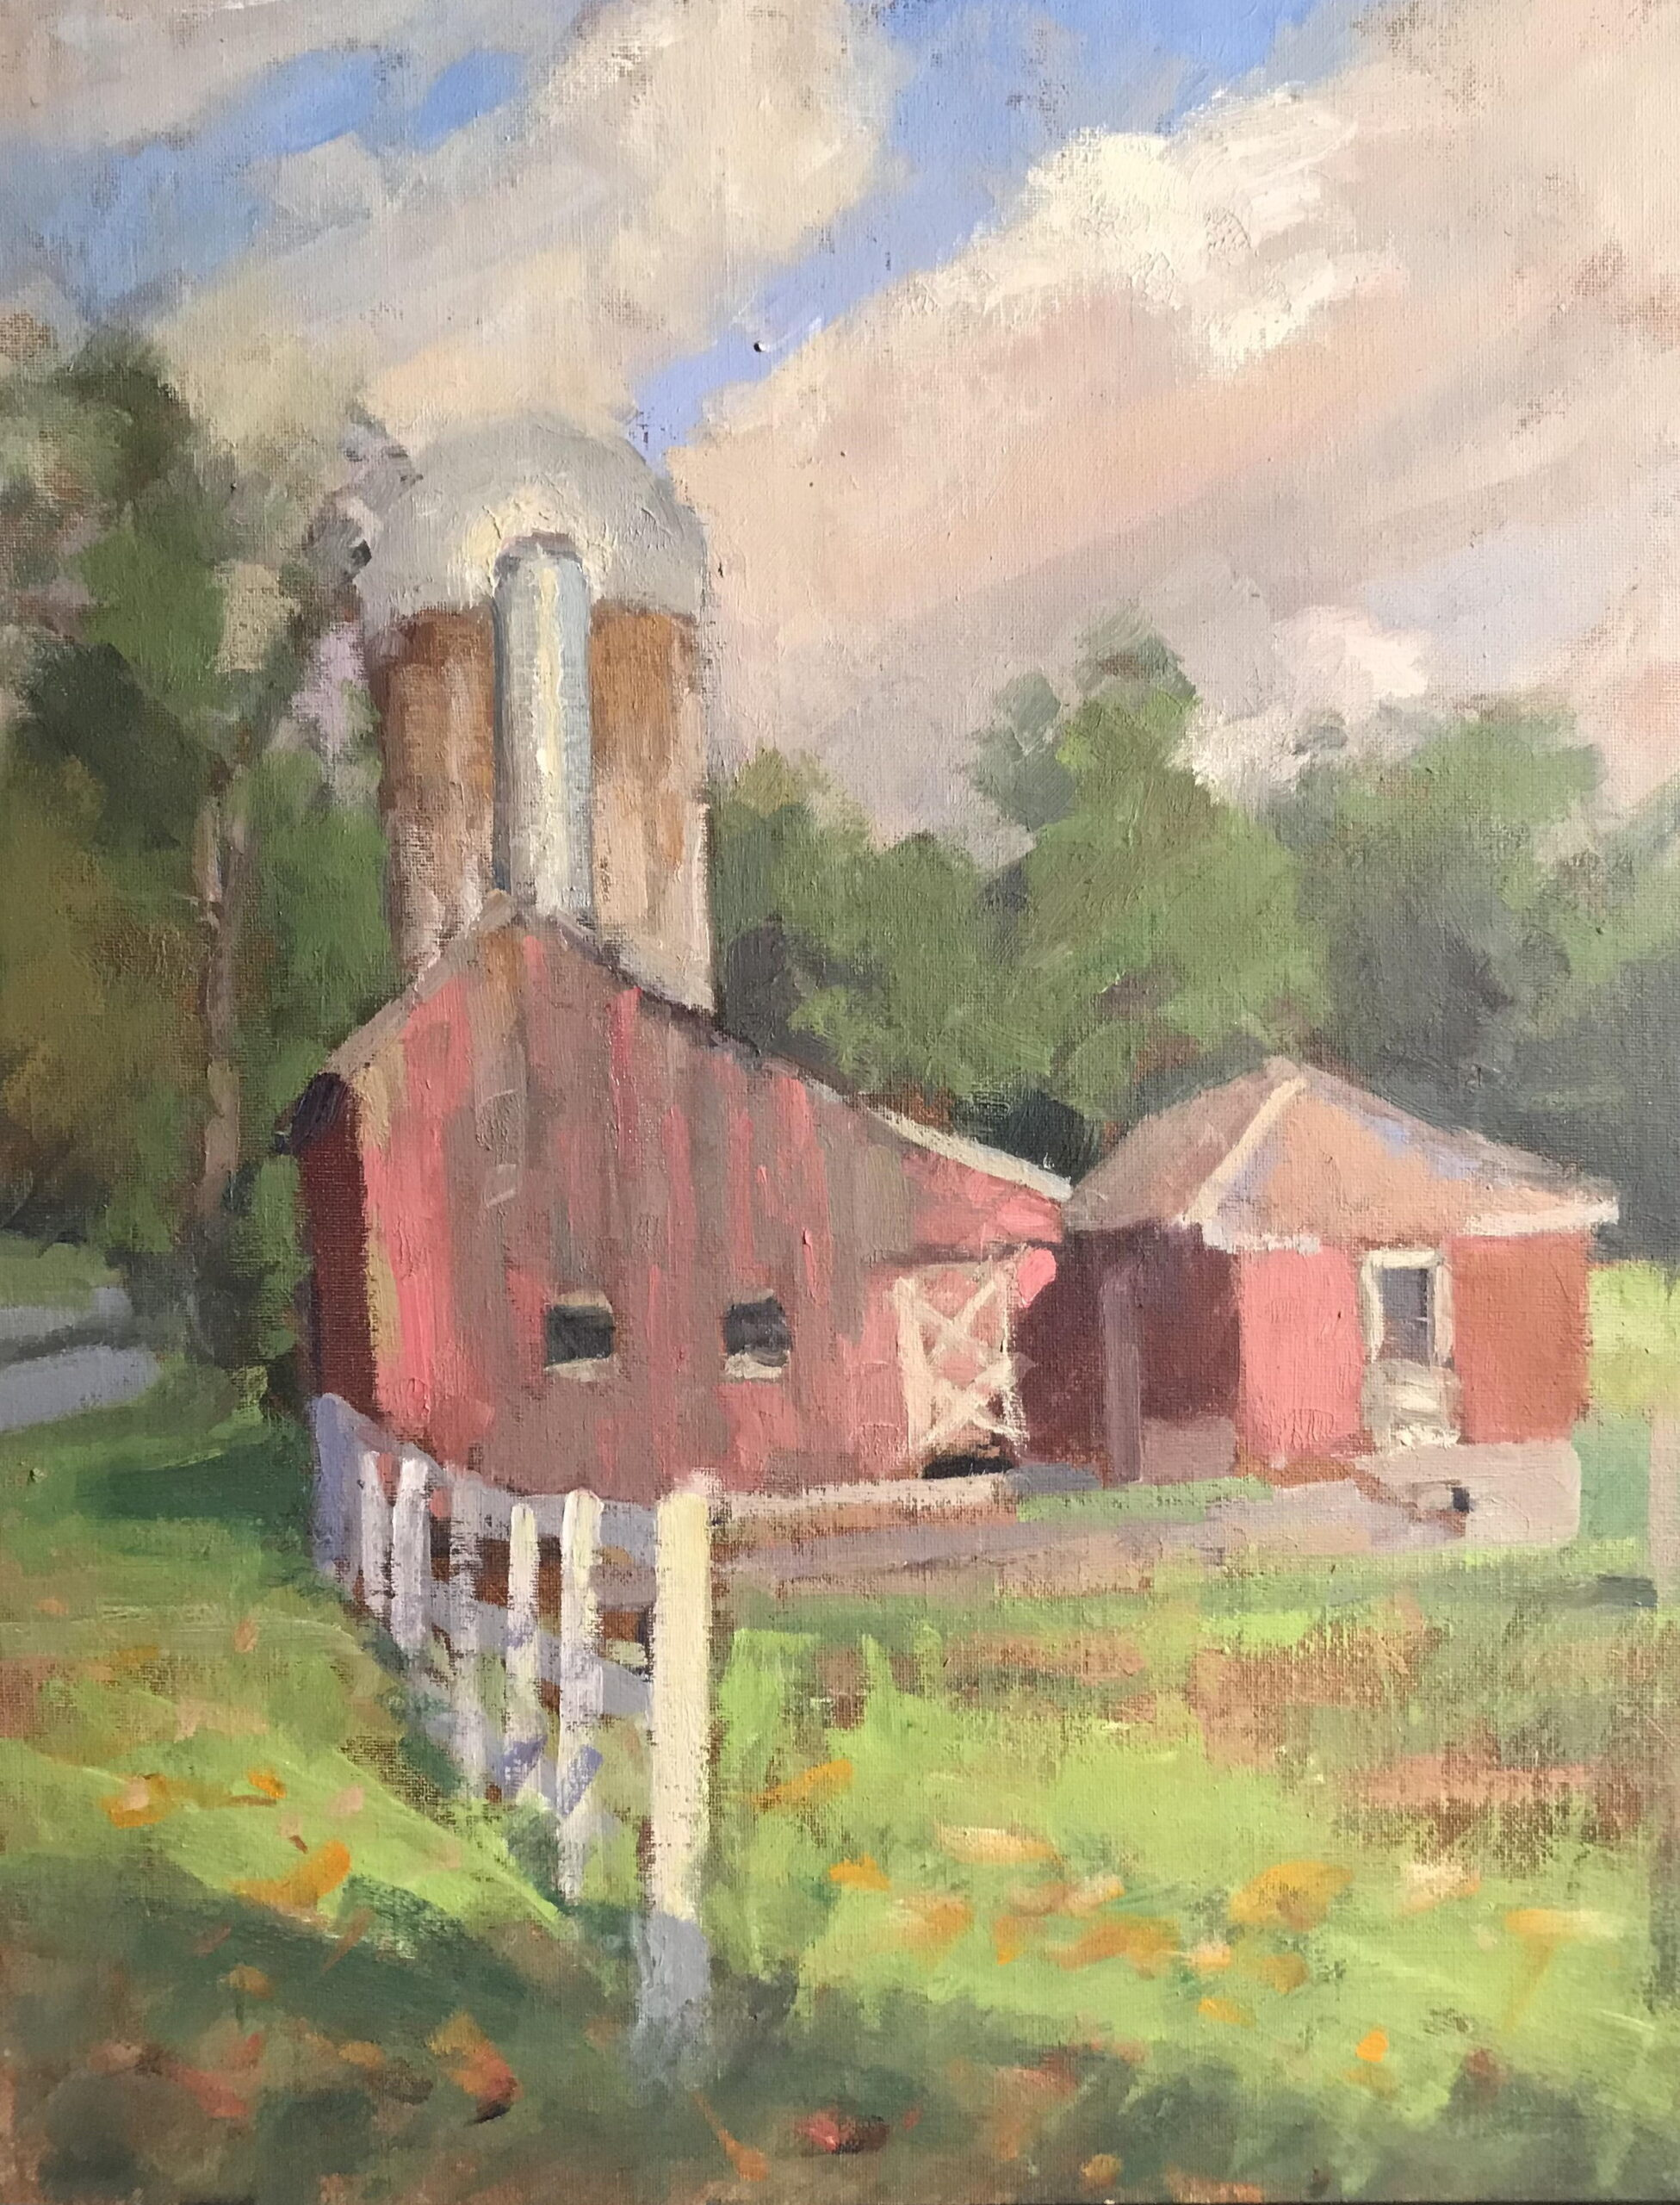 Barn Near Bull's Bridge, Oil on Canvas on Panel, 20 x 16 Inches, by Susan Grisell, $550